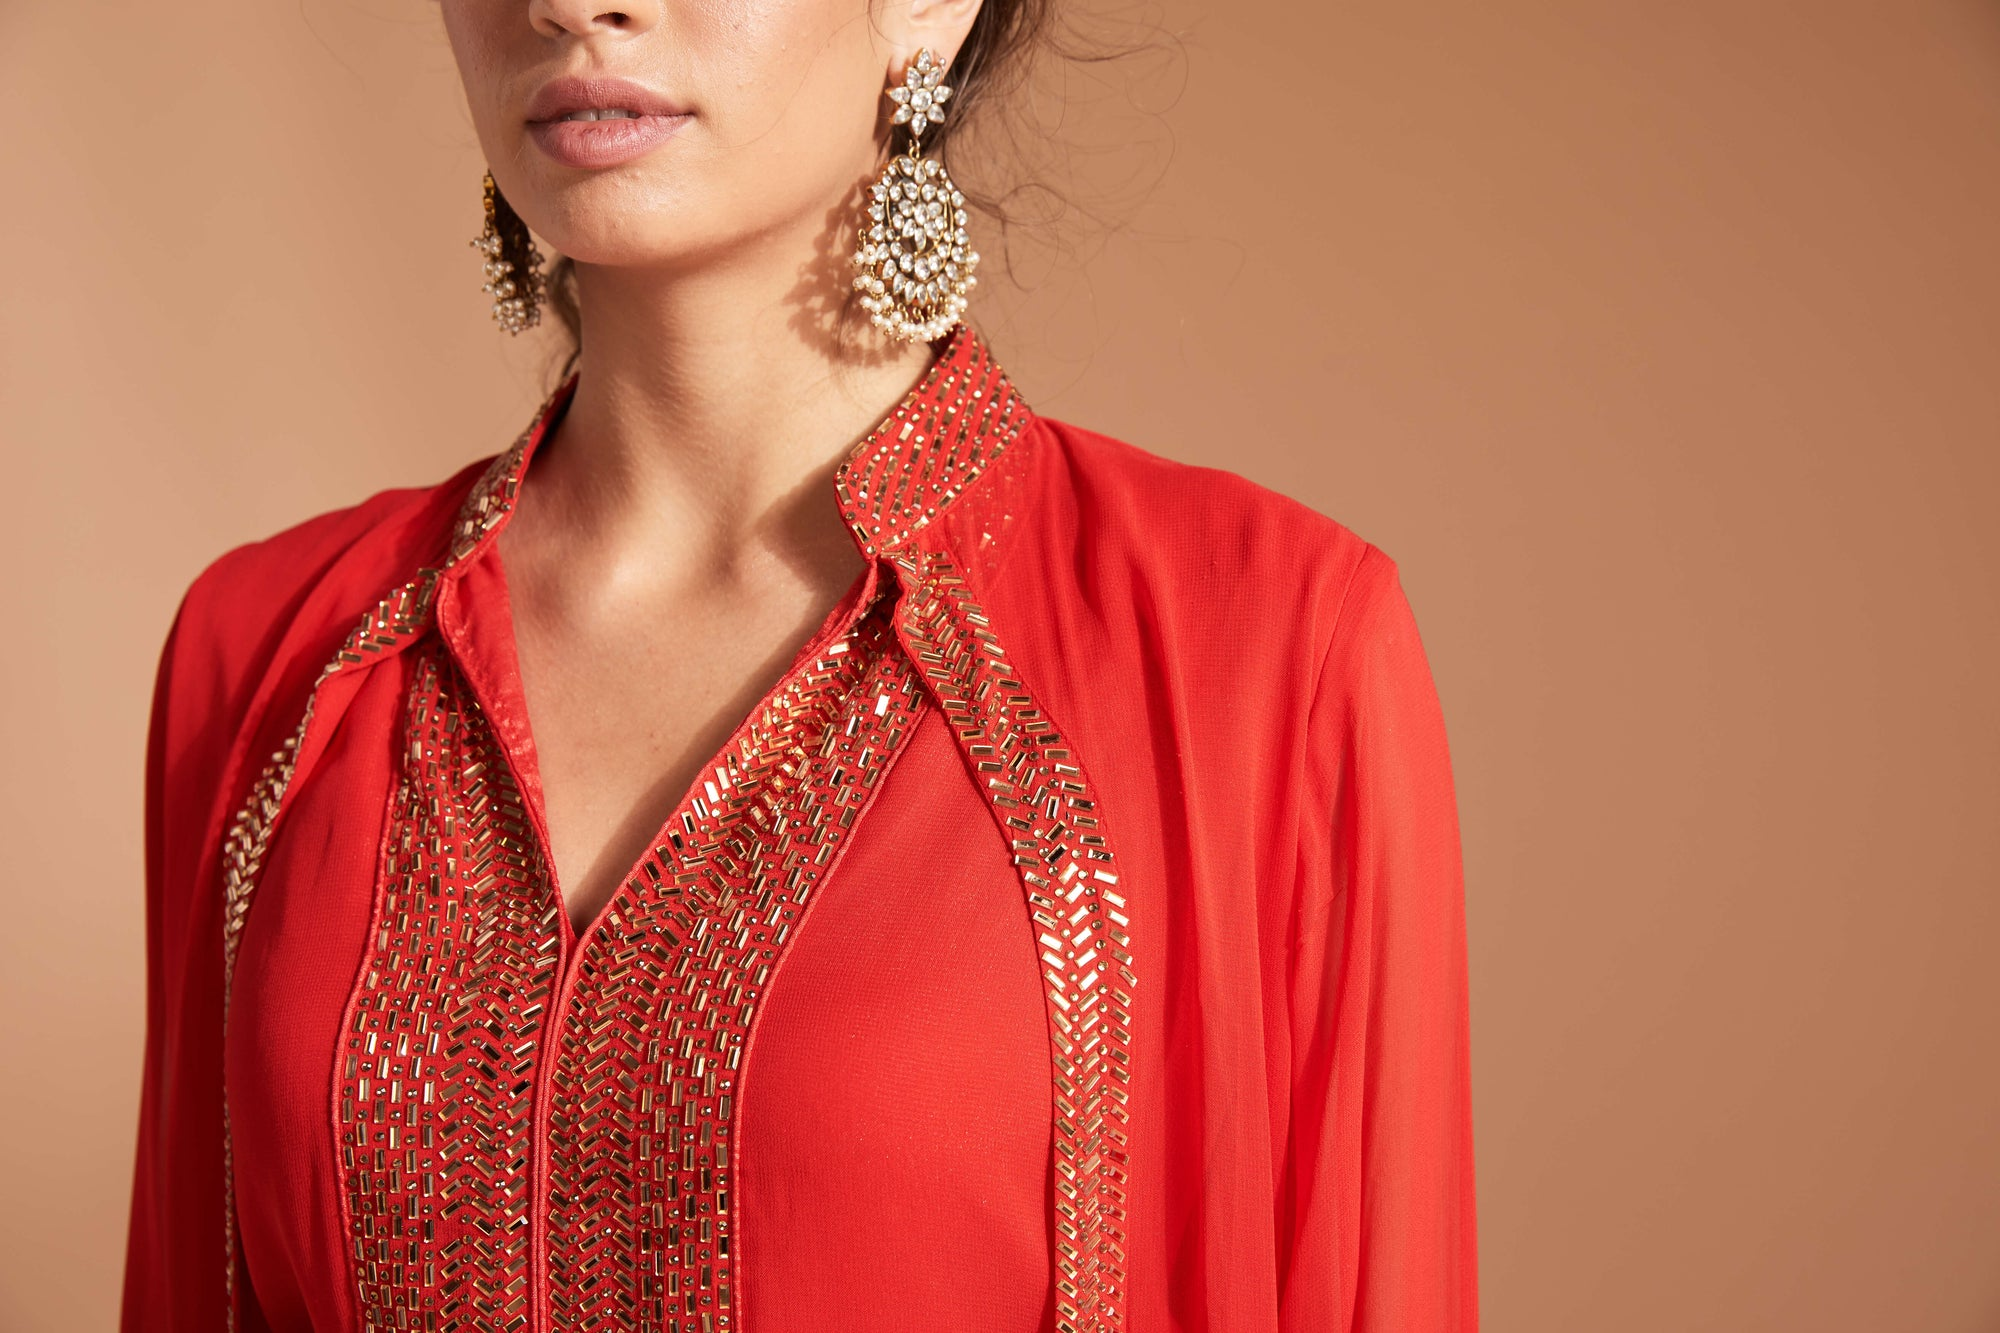 Red outfit with sequin work paired with beautiful Indian jewel earring